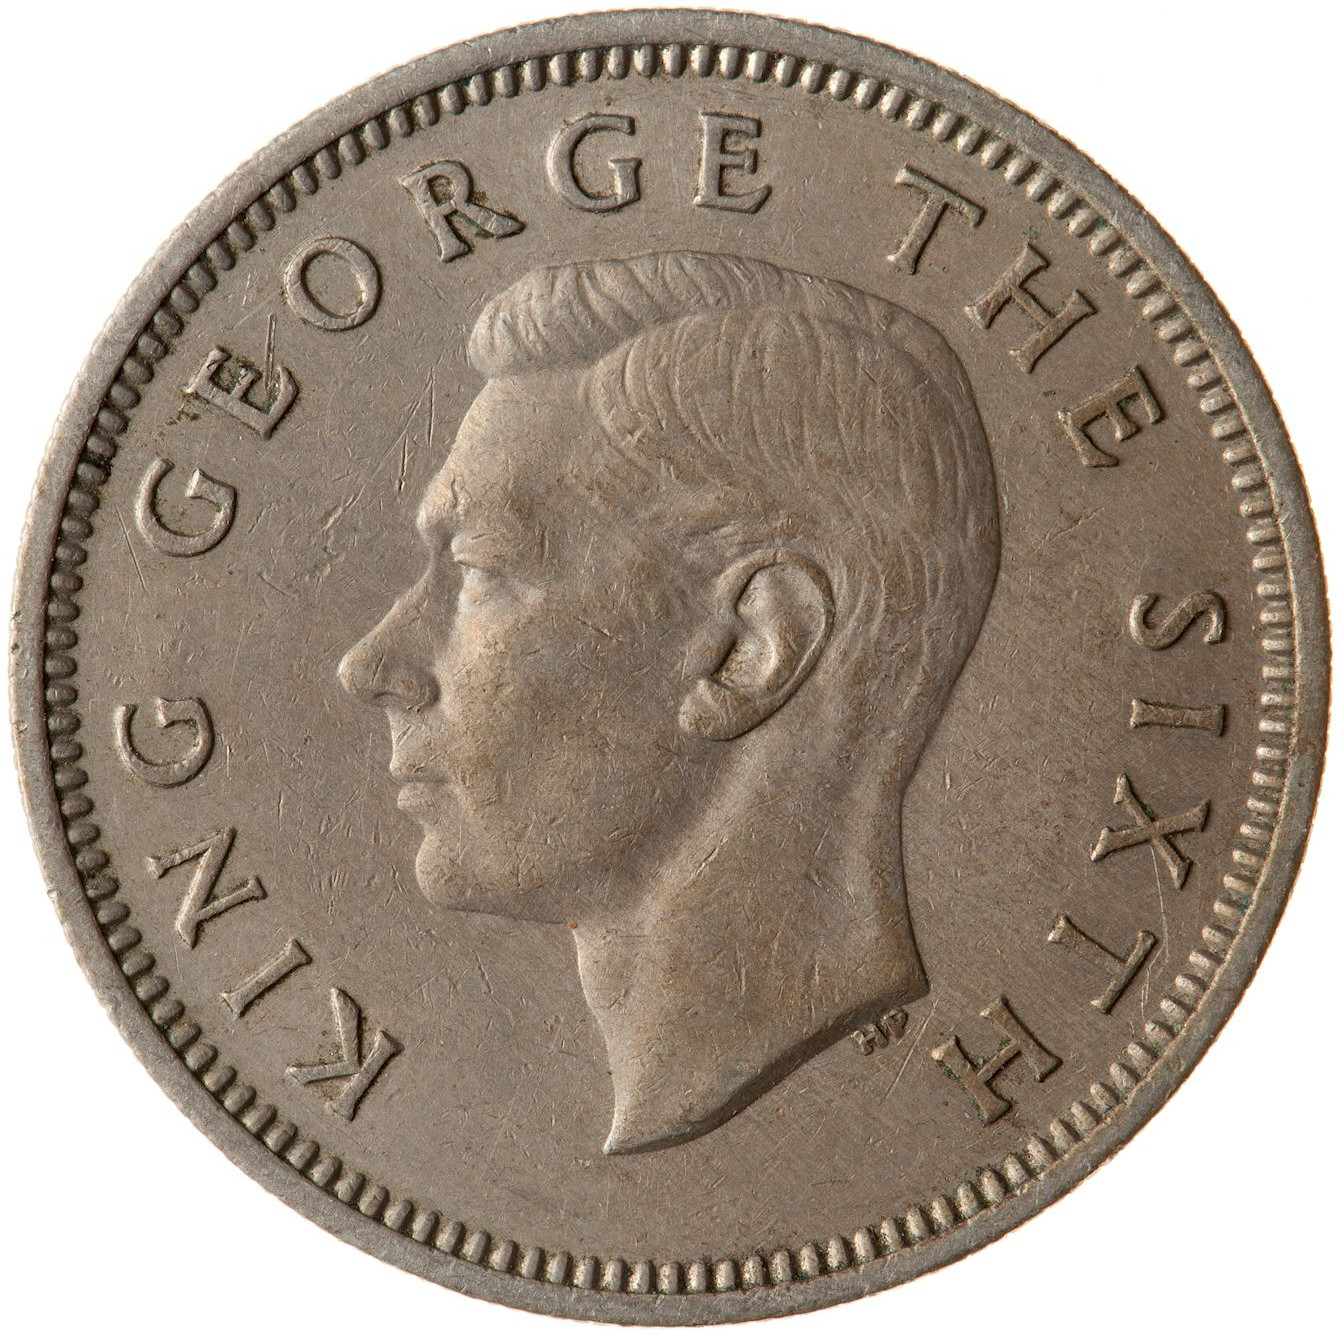 Shilling 1950: Photo Coin - 1 Shilling, New Zealand, 1950